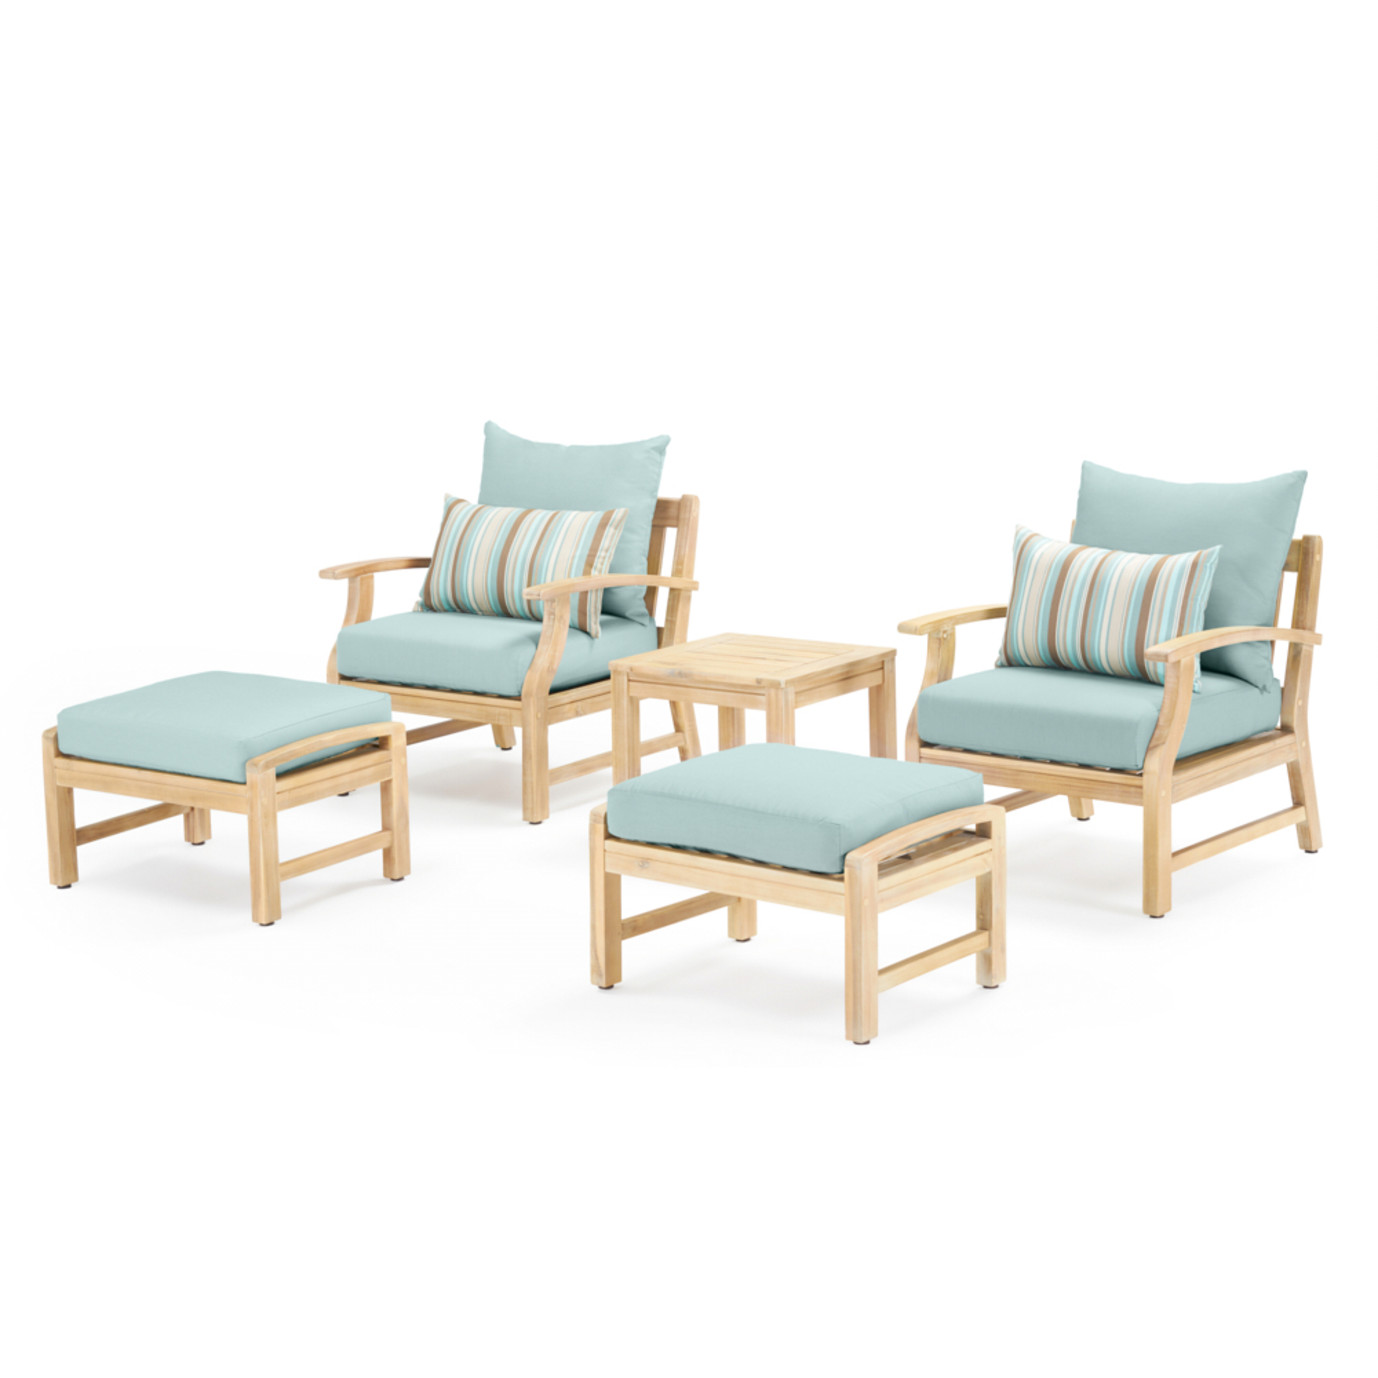 Kooper 5 Piece Club Chair & Ottoman Set - Bliss Blue